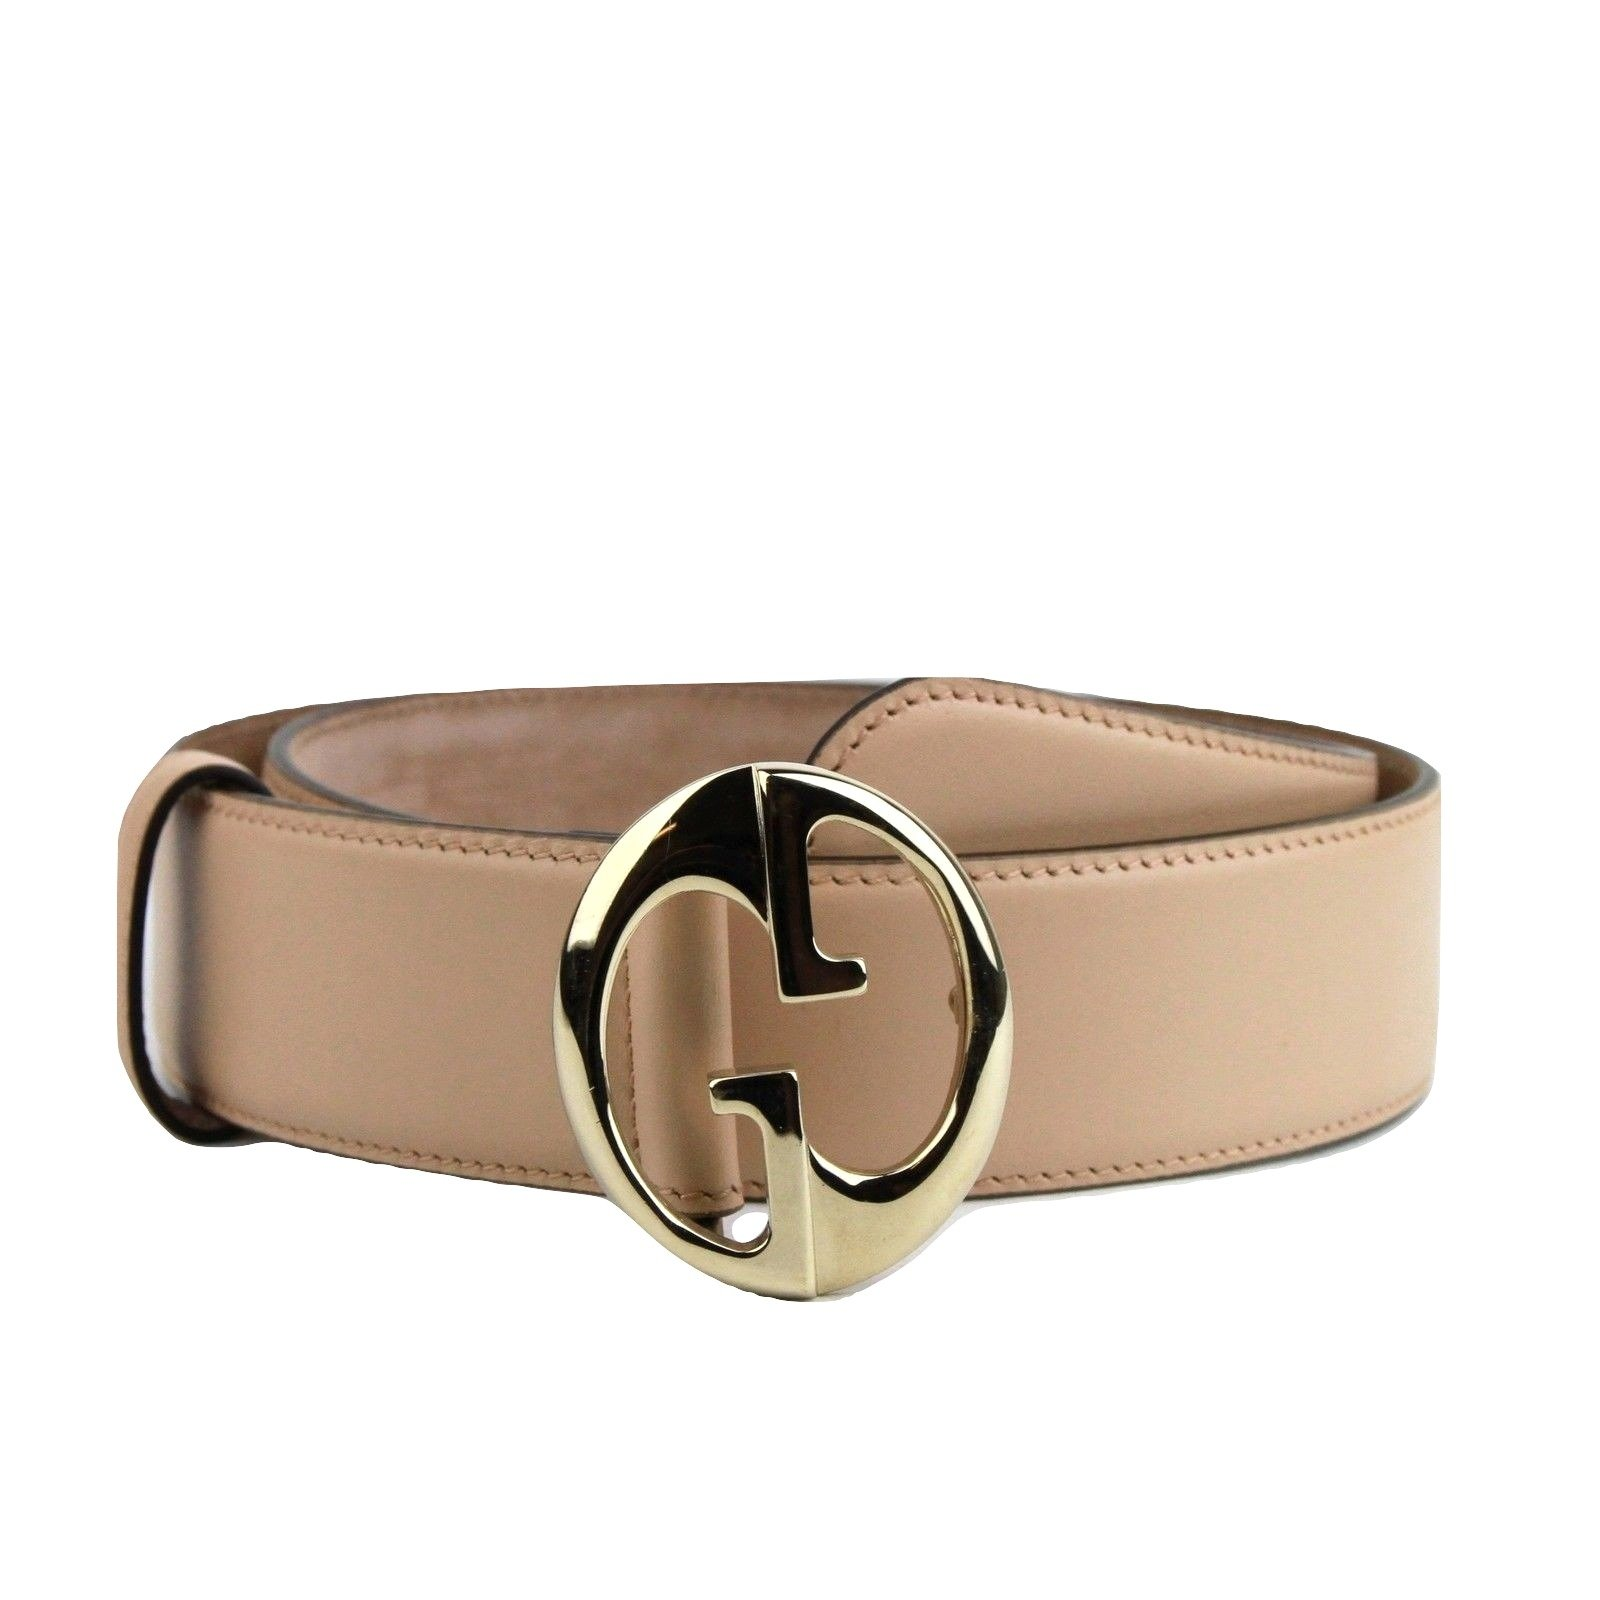 Gucci Women's Interlocking G Leather Belt with Gold Buckle 362728 5311 (80 / 32, Beige) by Gucci